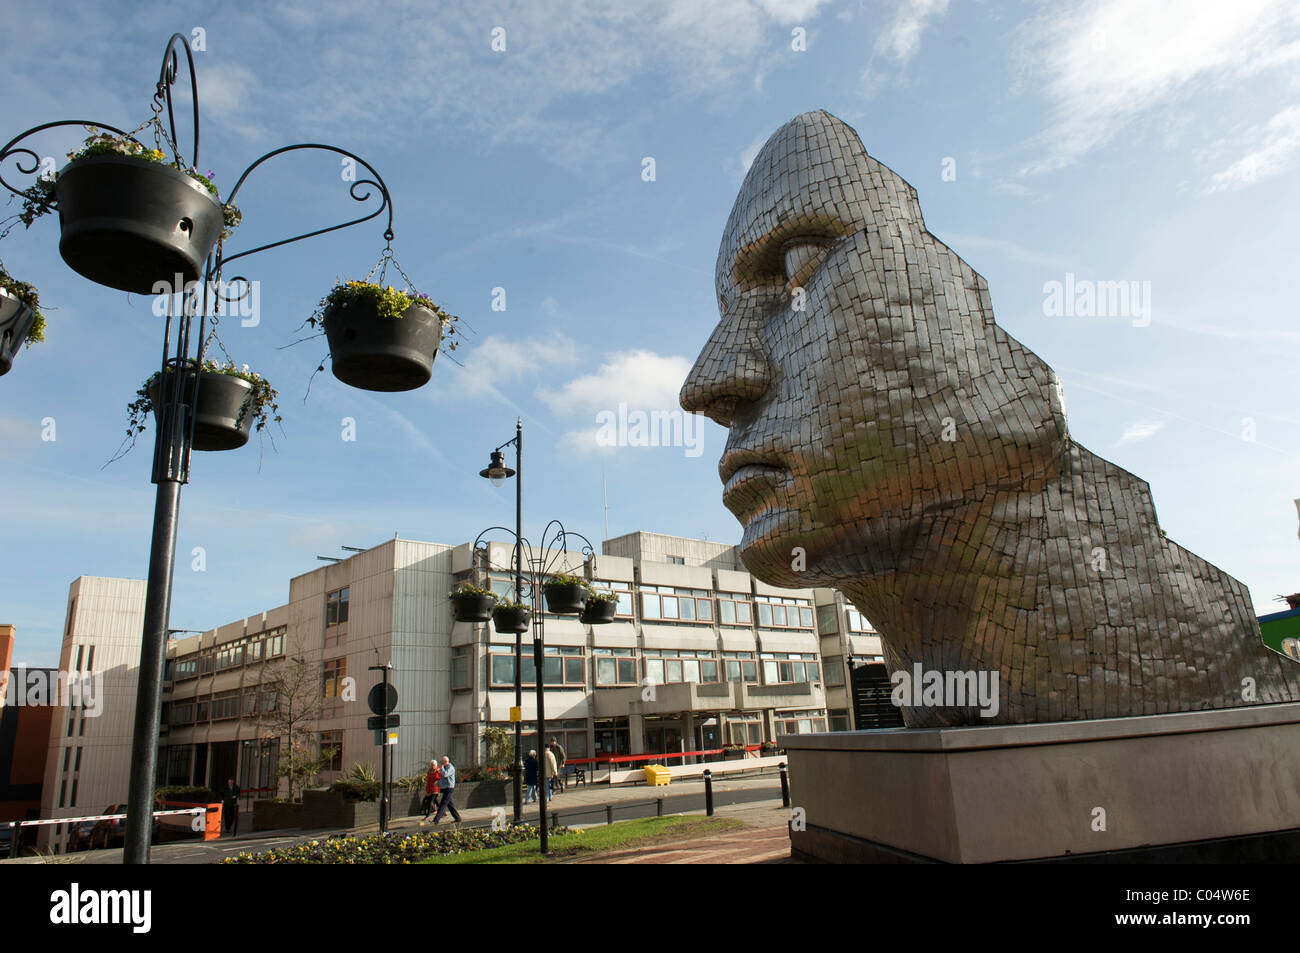 Wigan town centre statue THE FACE OF WIGAN by artist RICK KIRBY - Stock Image